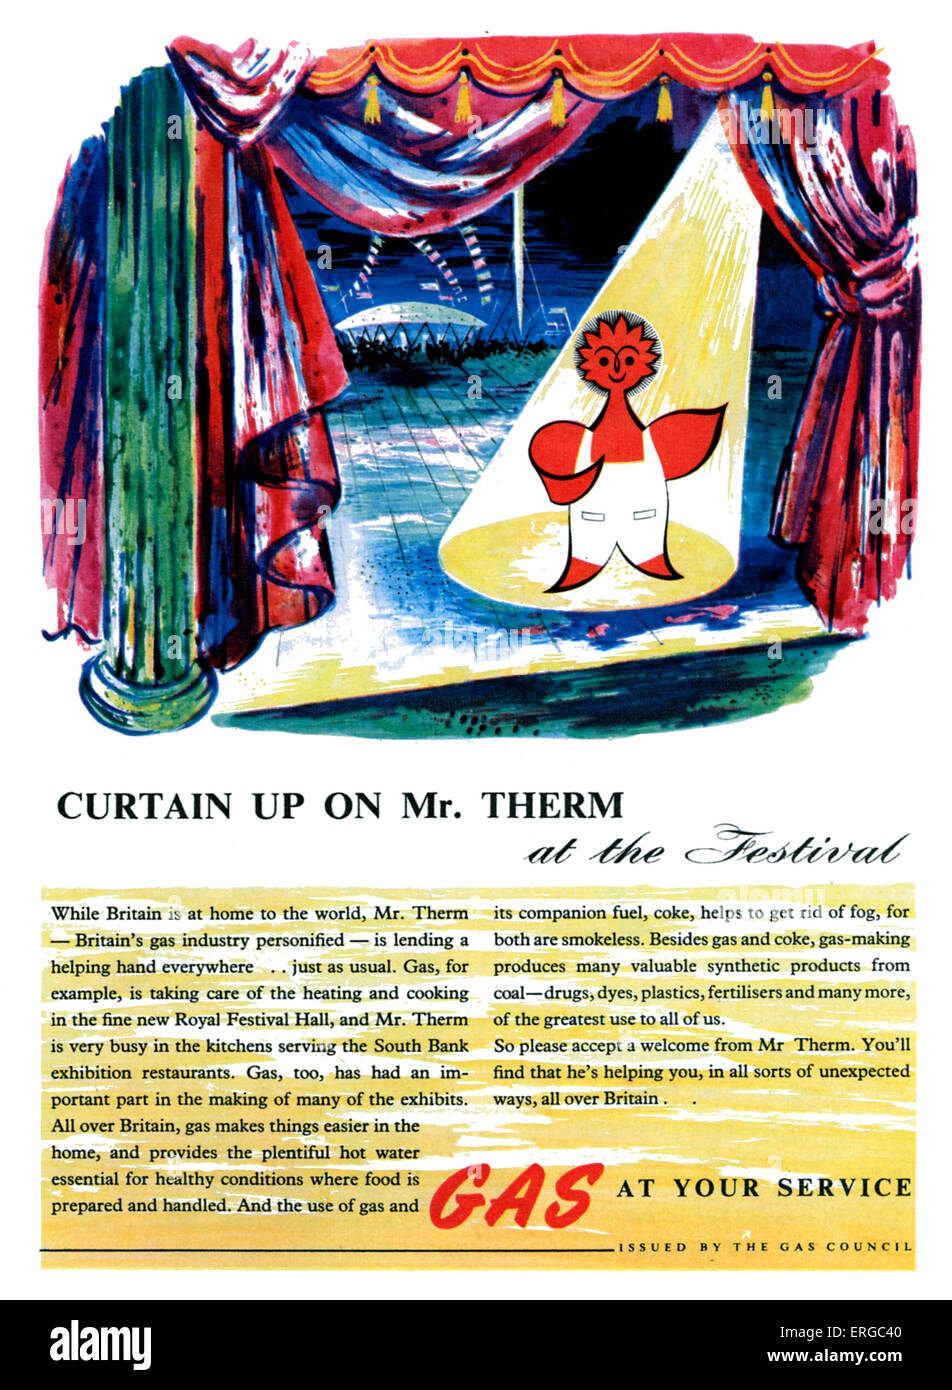 Gas Council advertisement - Mr. Therm, 1950s. Caption: Curtain up on Mr Therm at the Festival.  ..Gas at your Service. Stock Photo